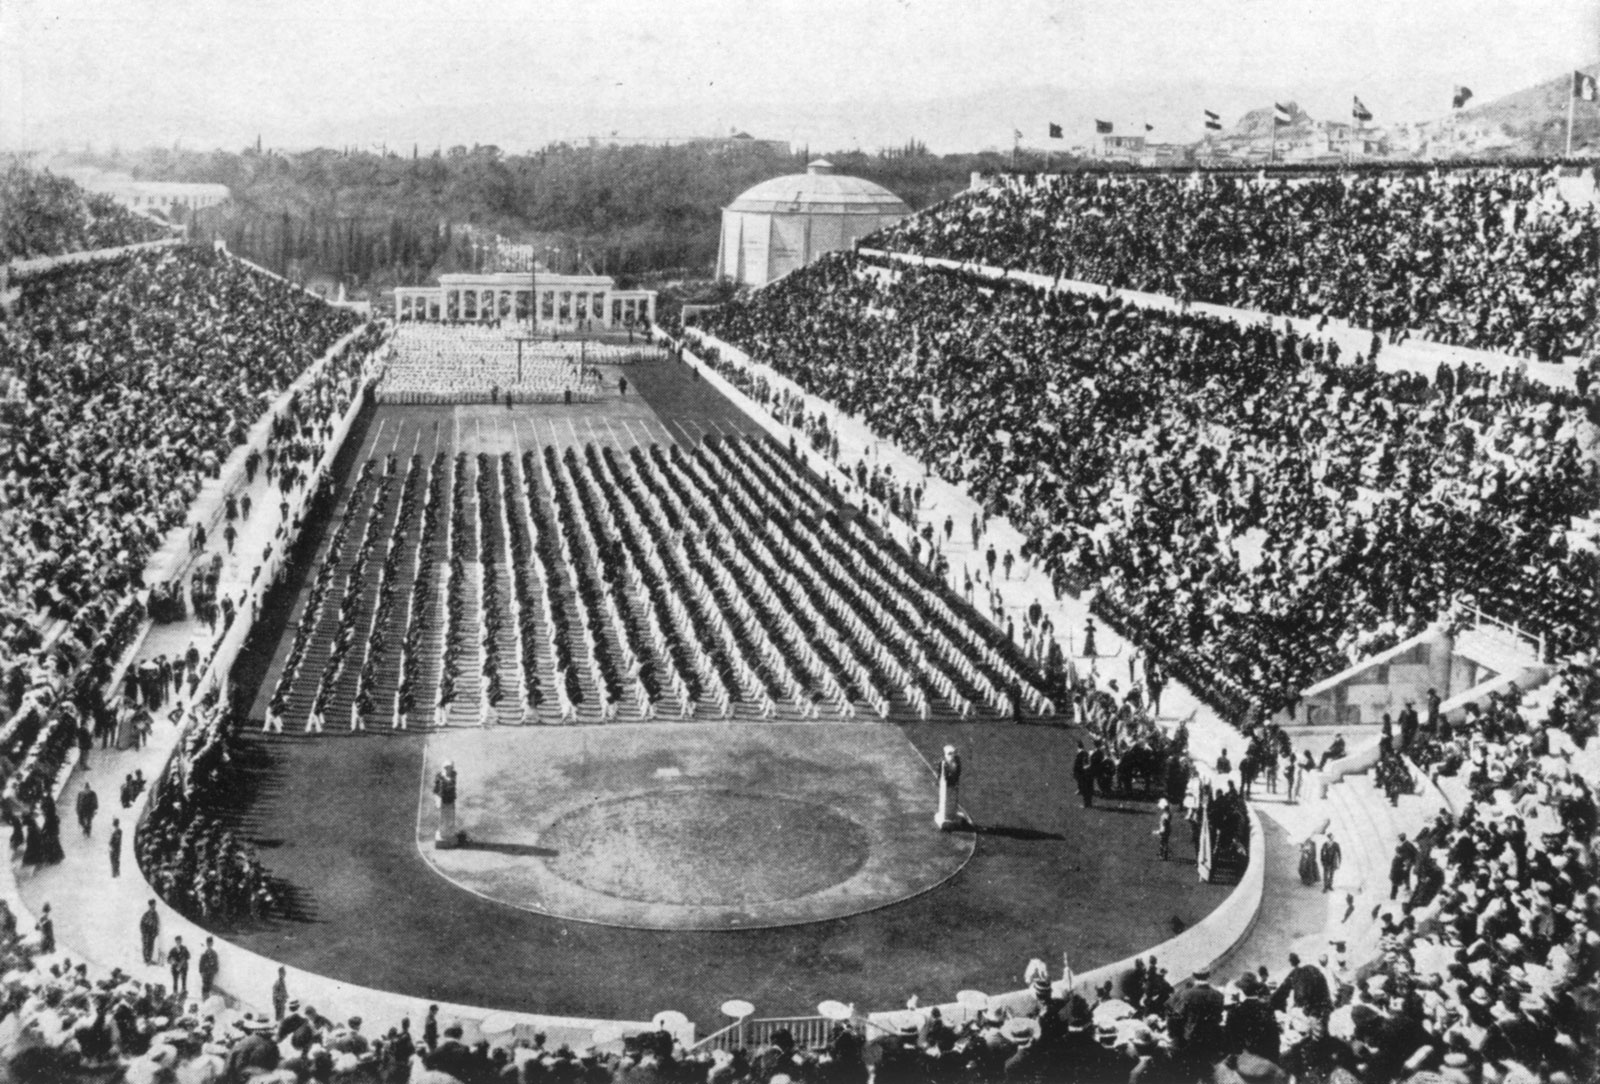 tinhte_marathon_Panathenaic-Stadium-athletics-events-Athens-1896-Olympic-1896.jpg